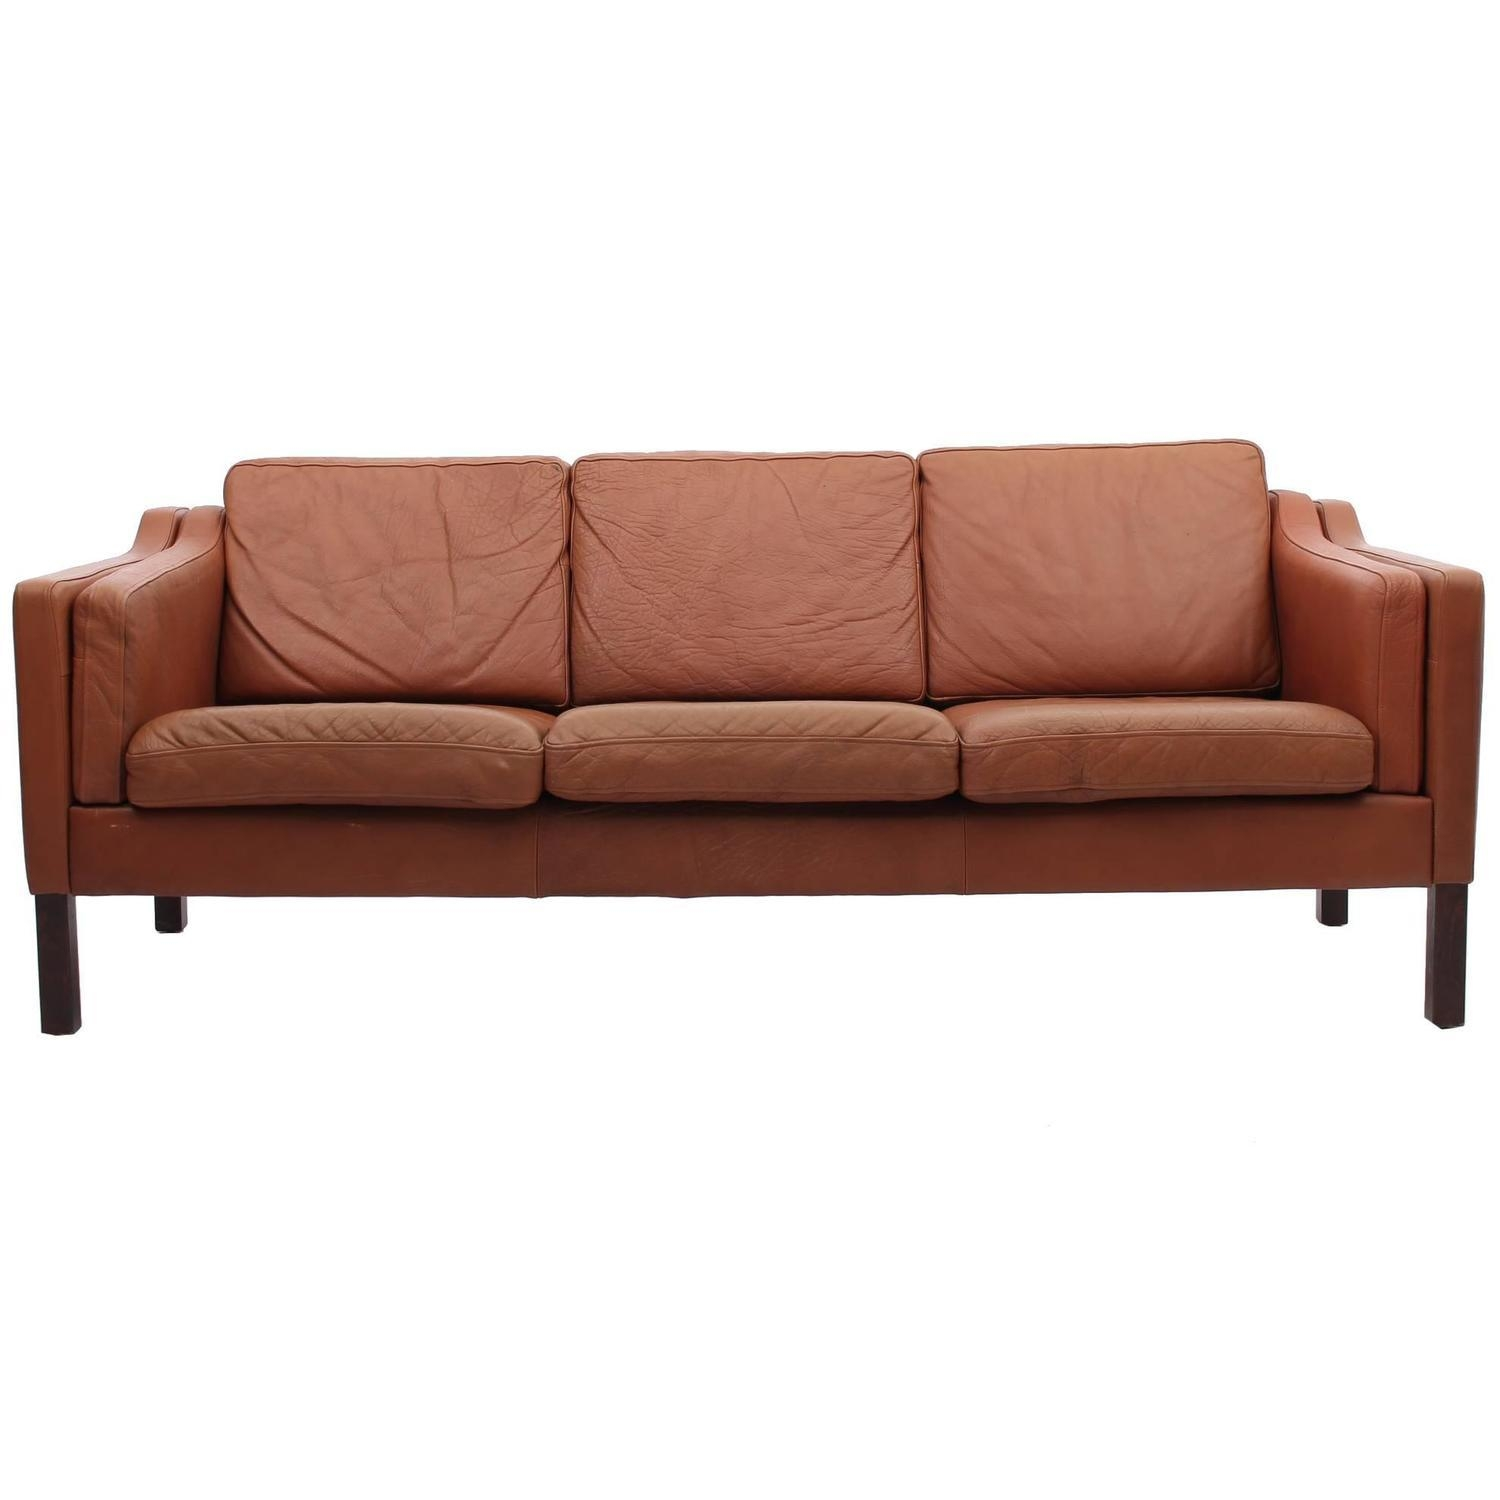 Sofas Center : Beige Leather Midury Modern Sofa Faux Sectional Intended For Mid Century Modern Leather Sectional (View 9 of 20)